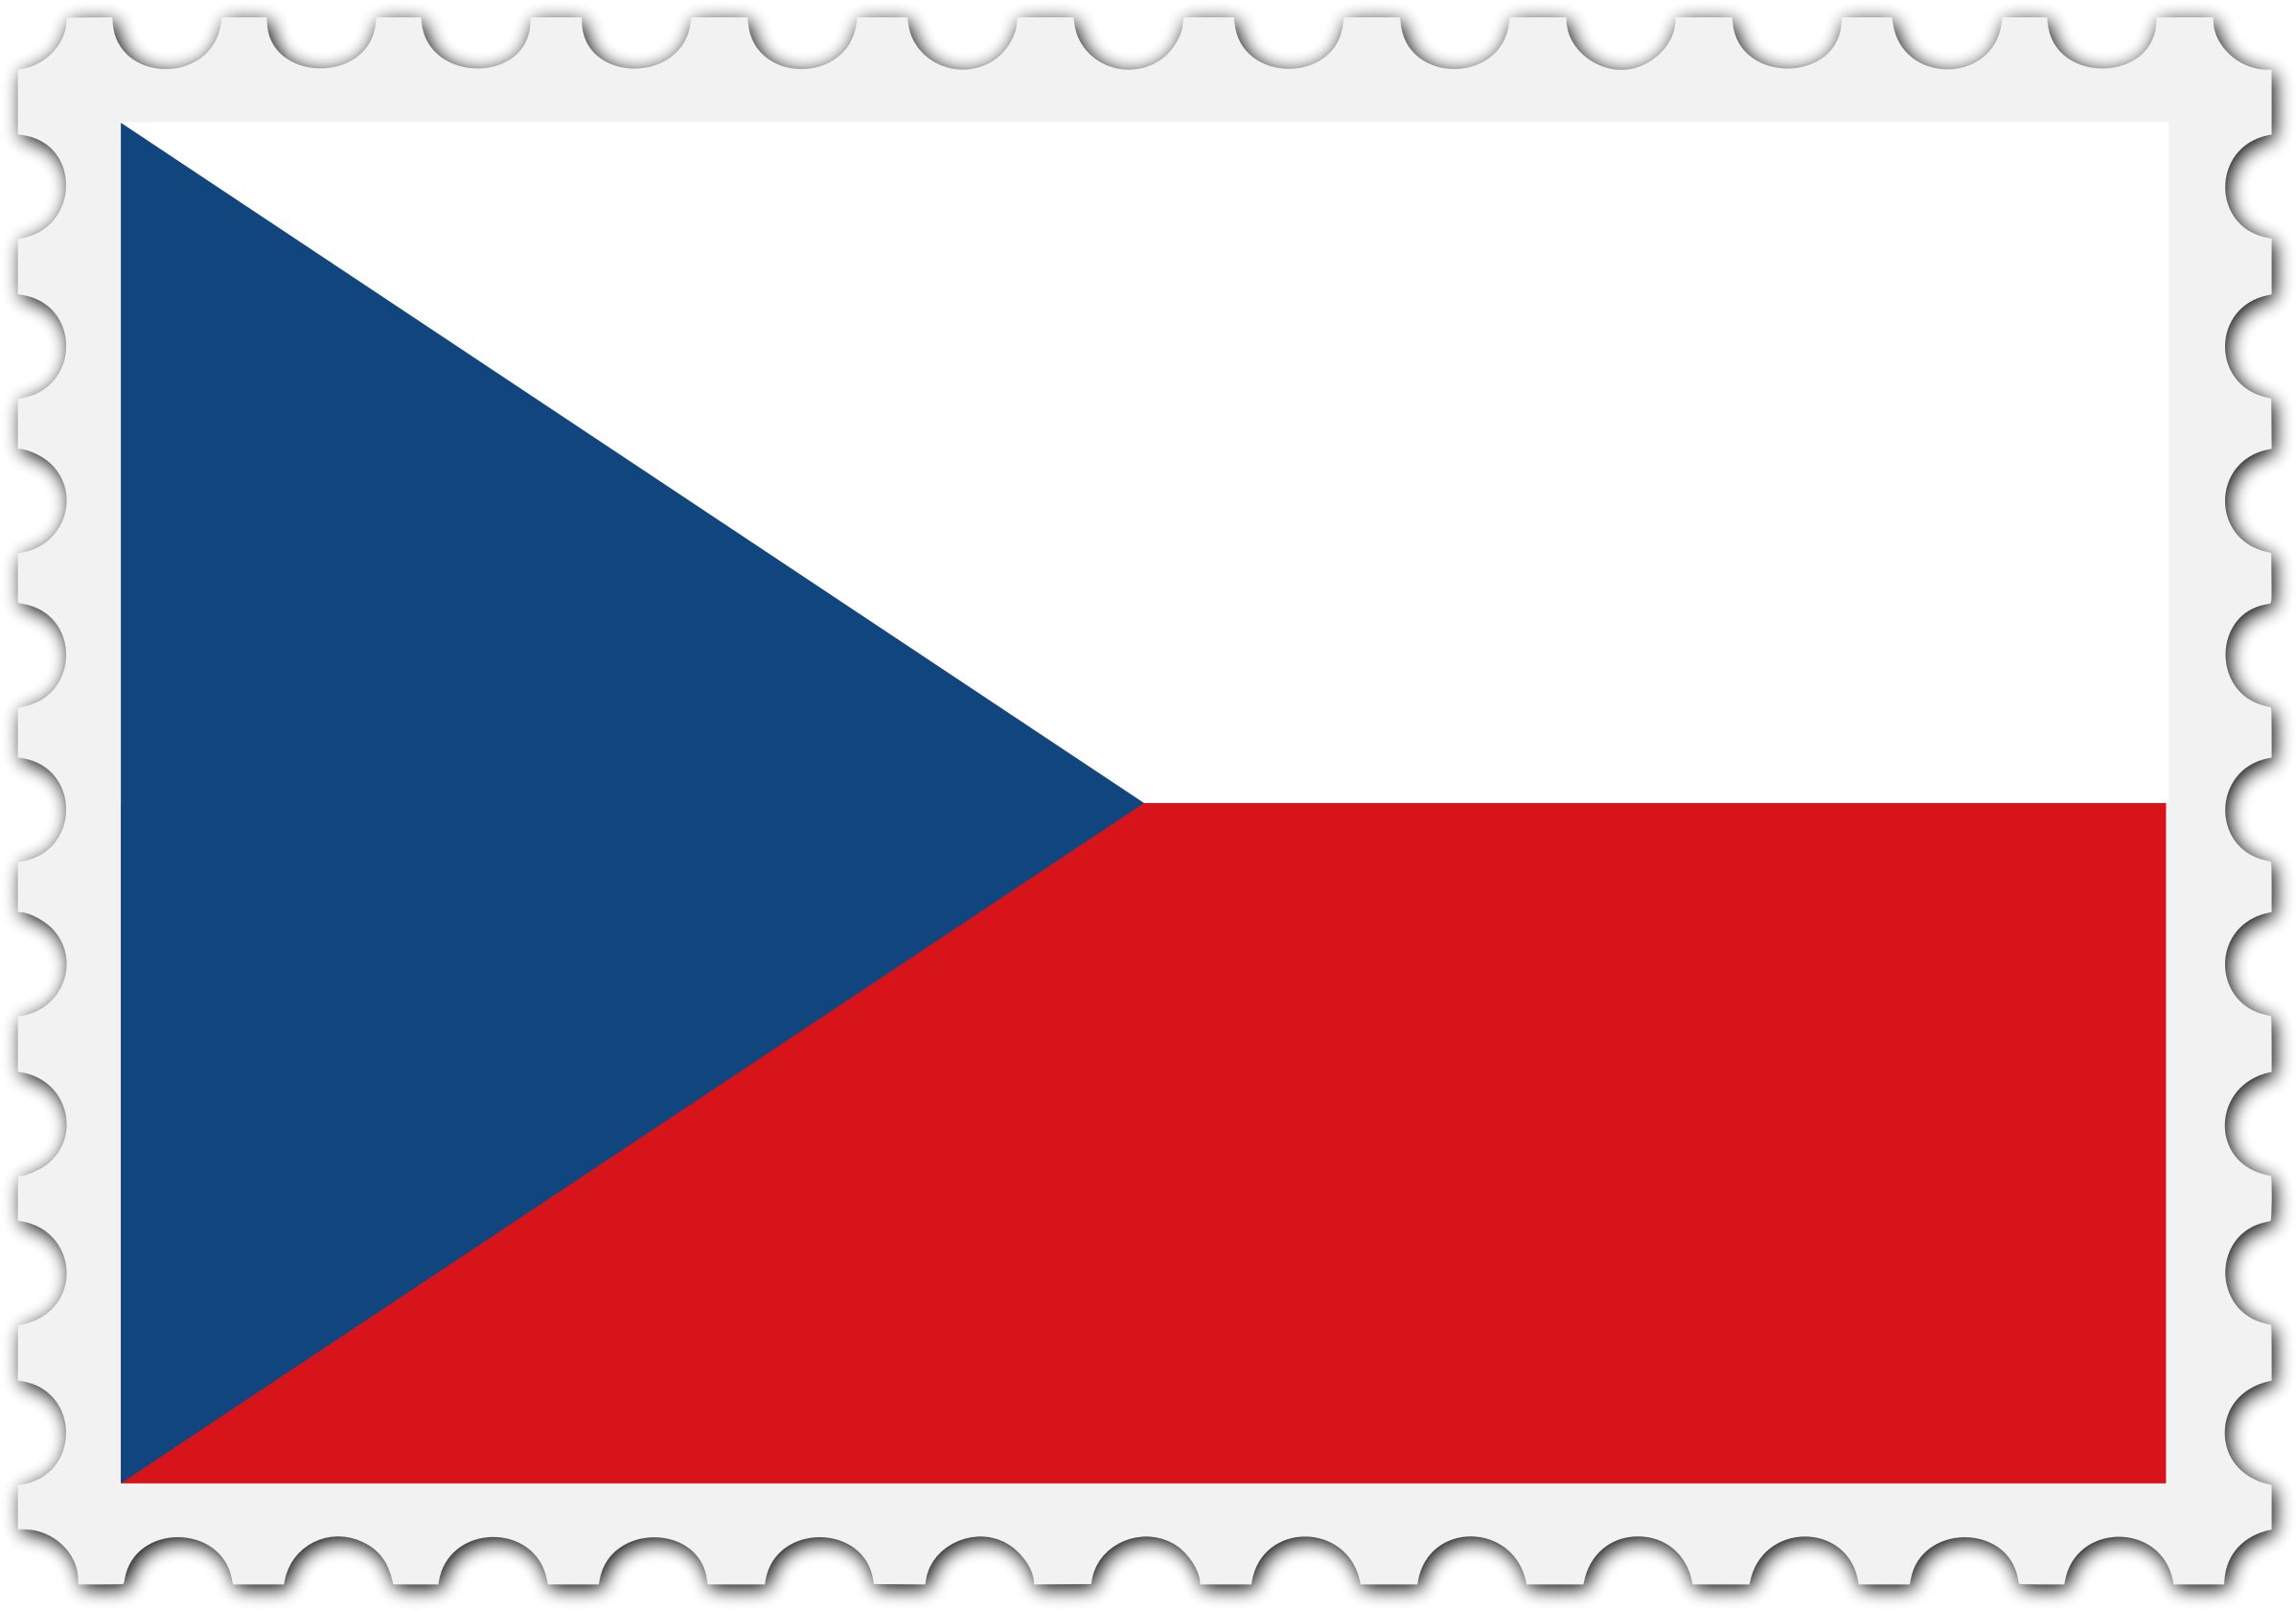 Czech Republic flag stamp by Firkin